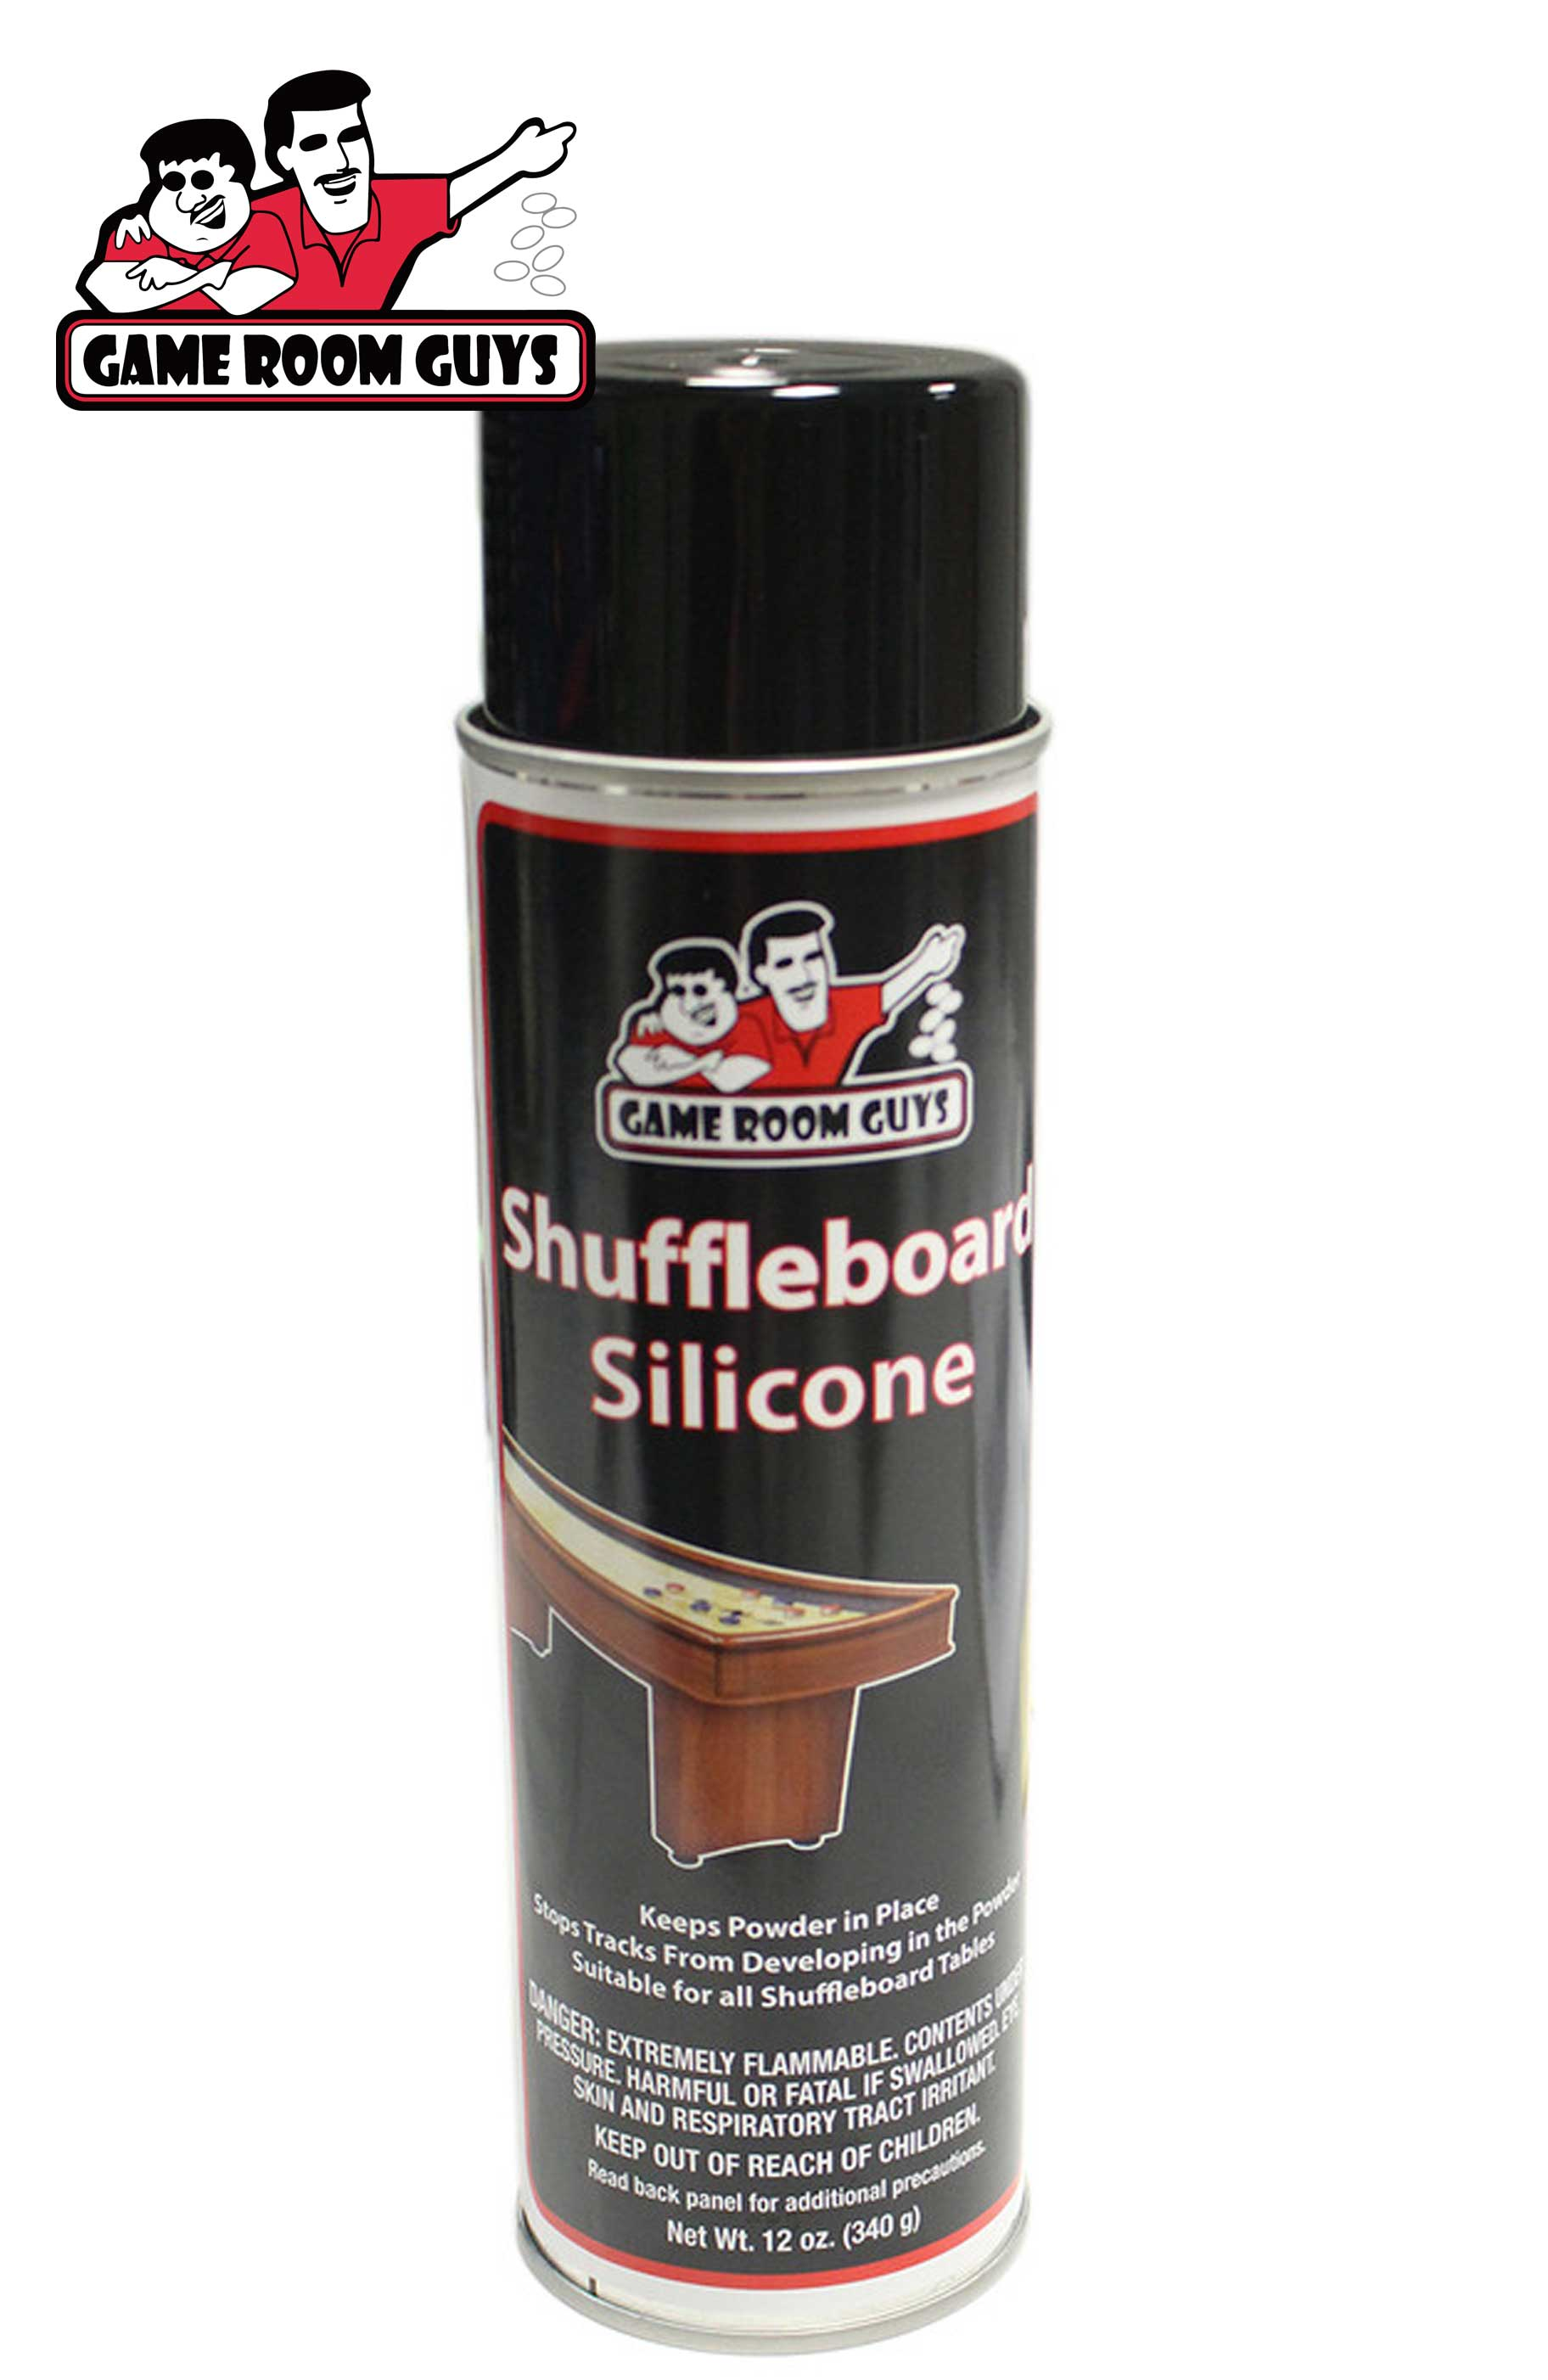 Game Room Guys Shuffleboard Silicone and Sun-Glo #3 Powder | Game Room Guys